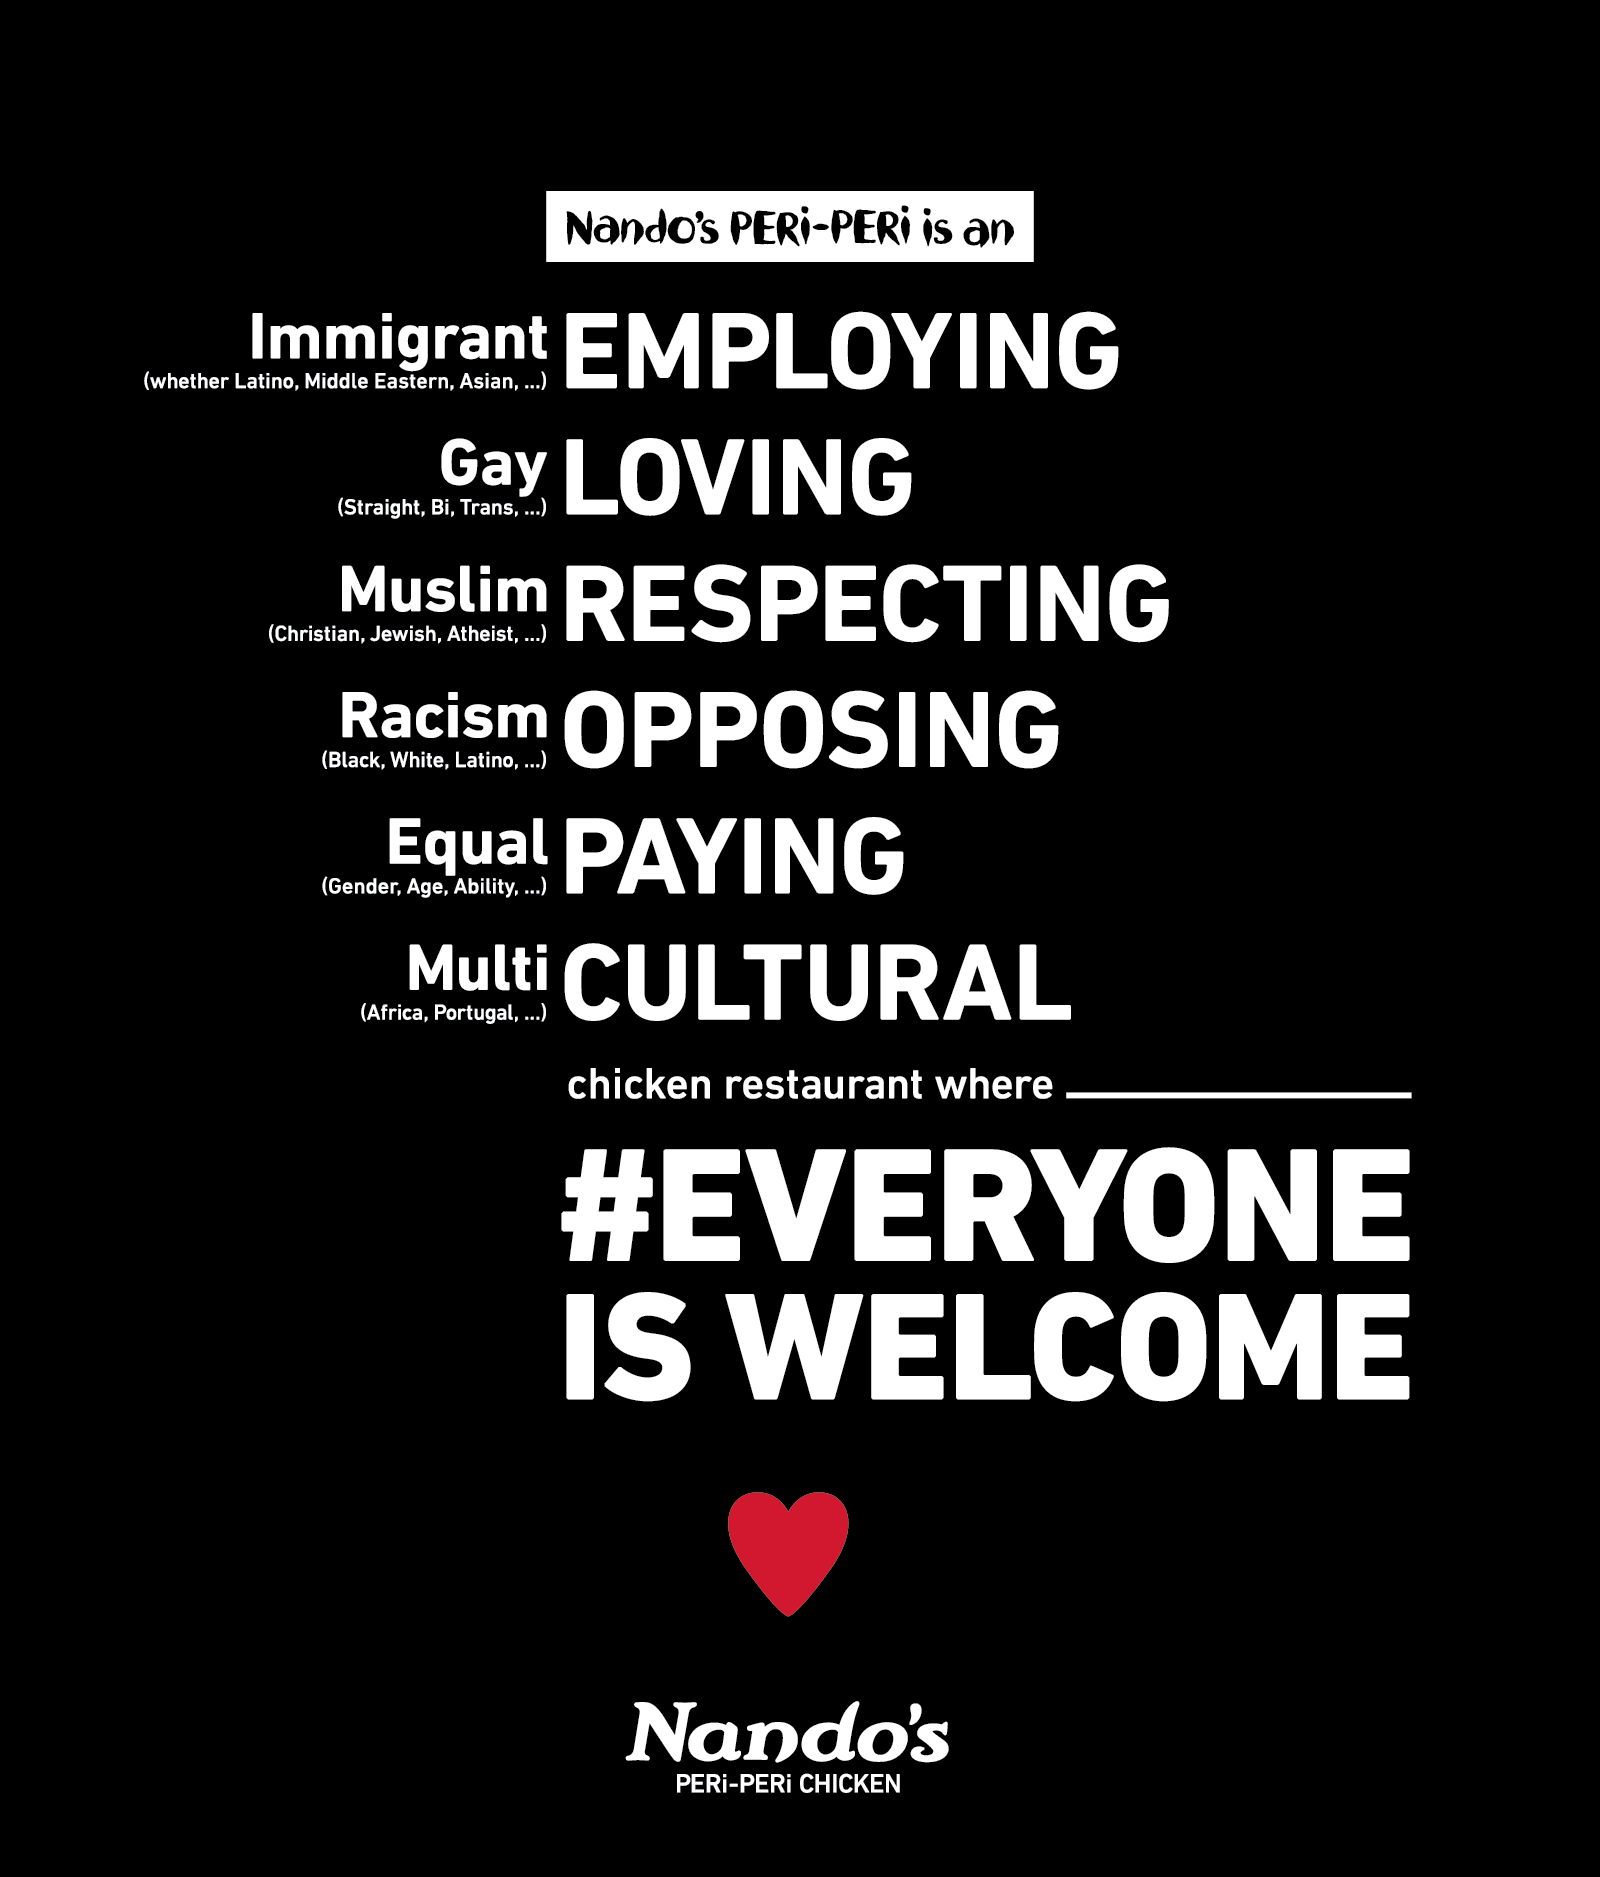 everyoneiswelcome_statement_web